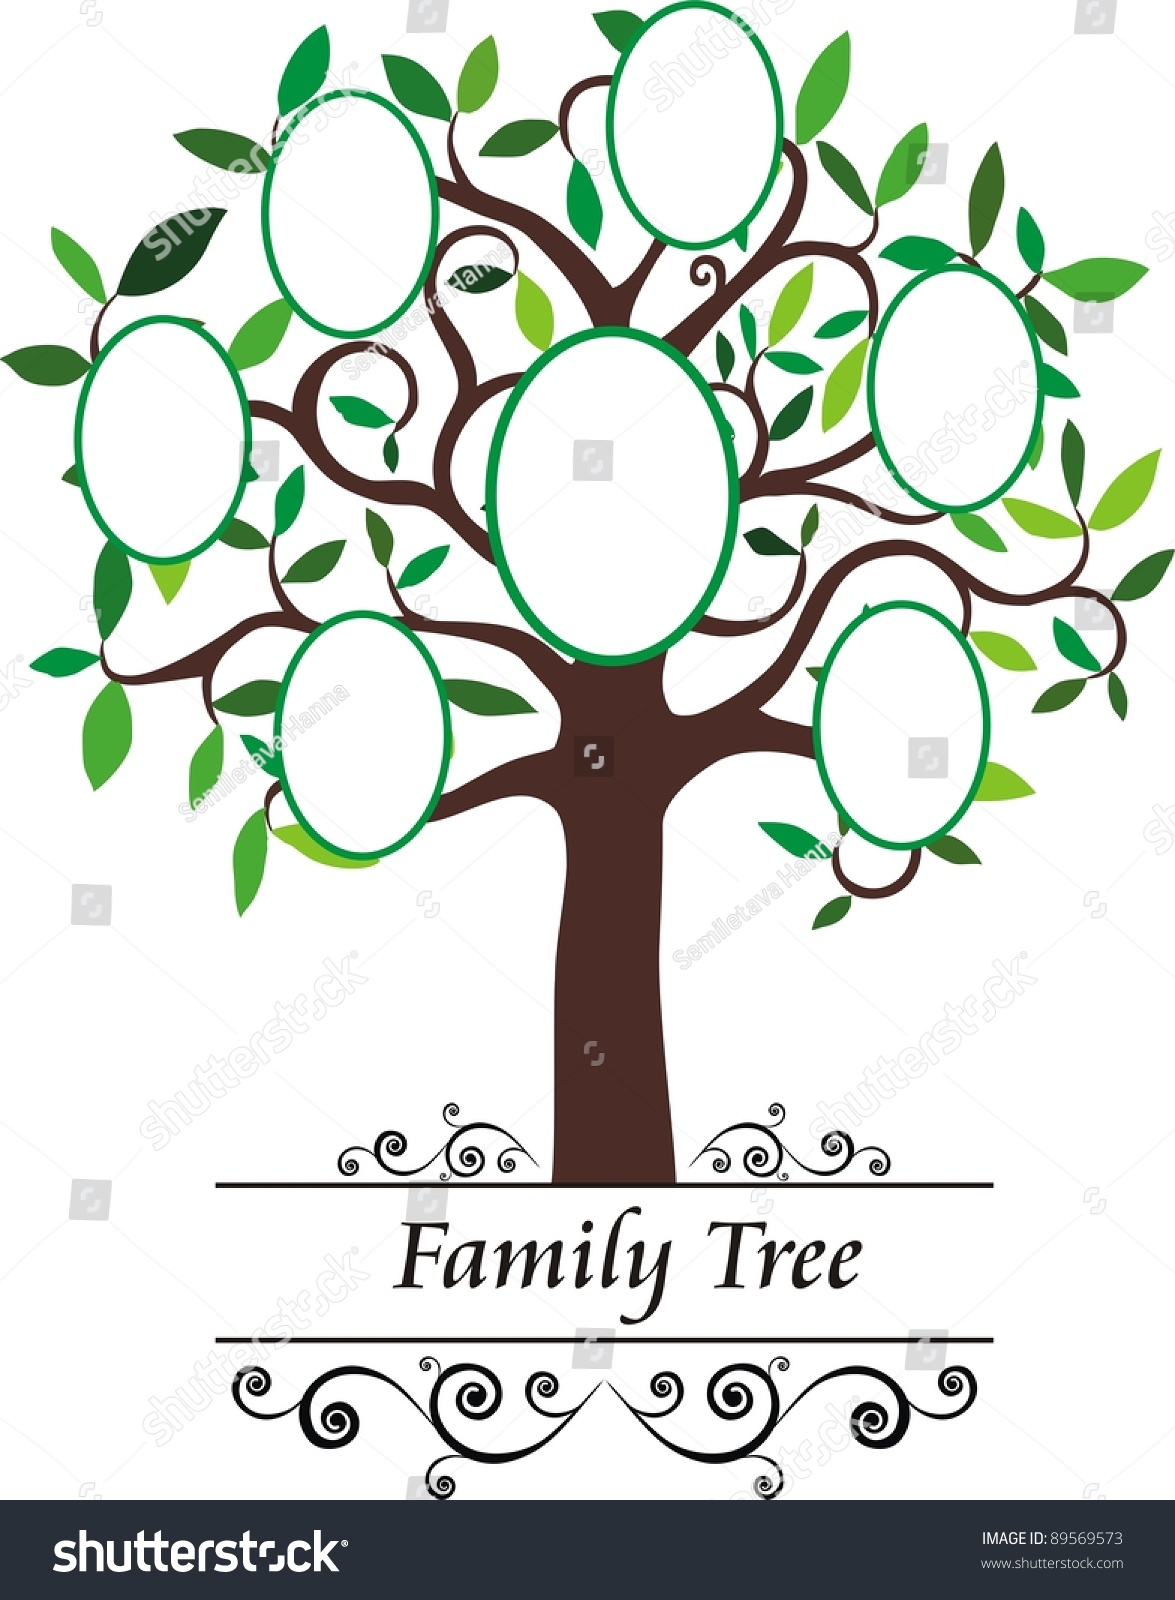 Family Tree Frames Empty Your Input Stock Illustration 89569573 ...